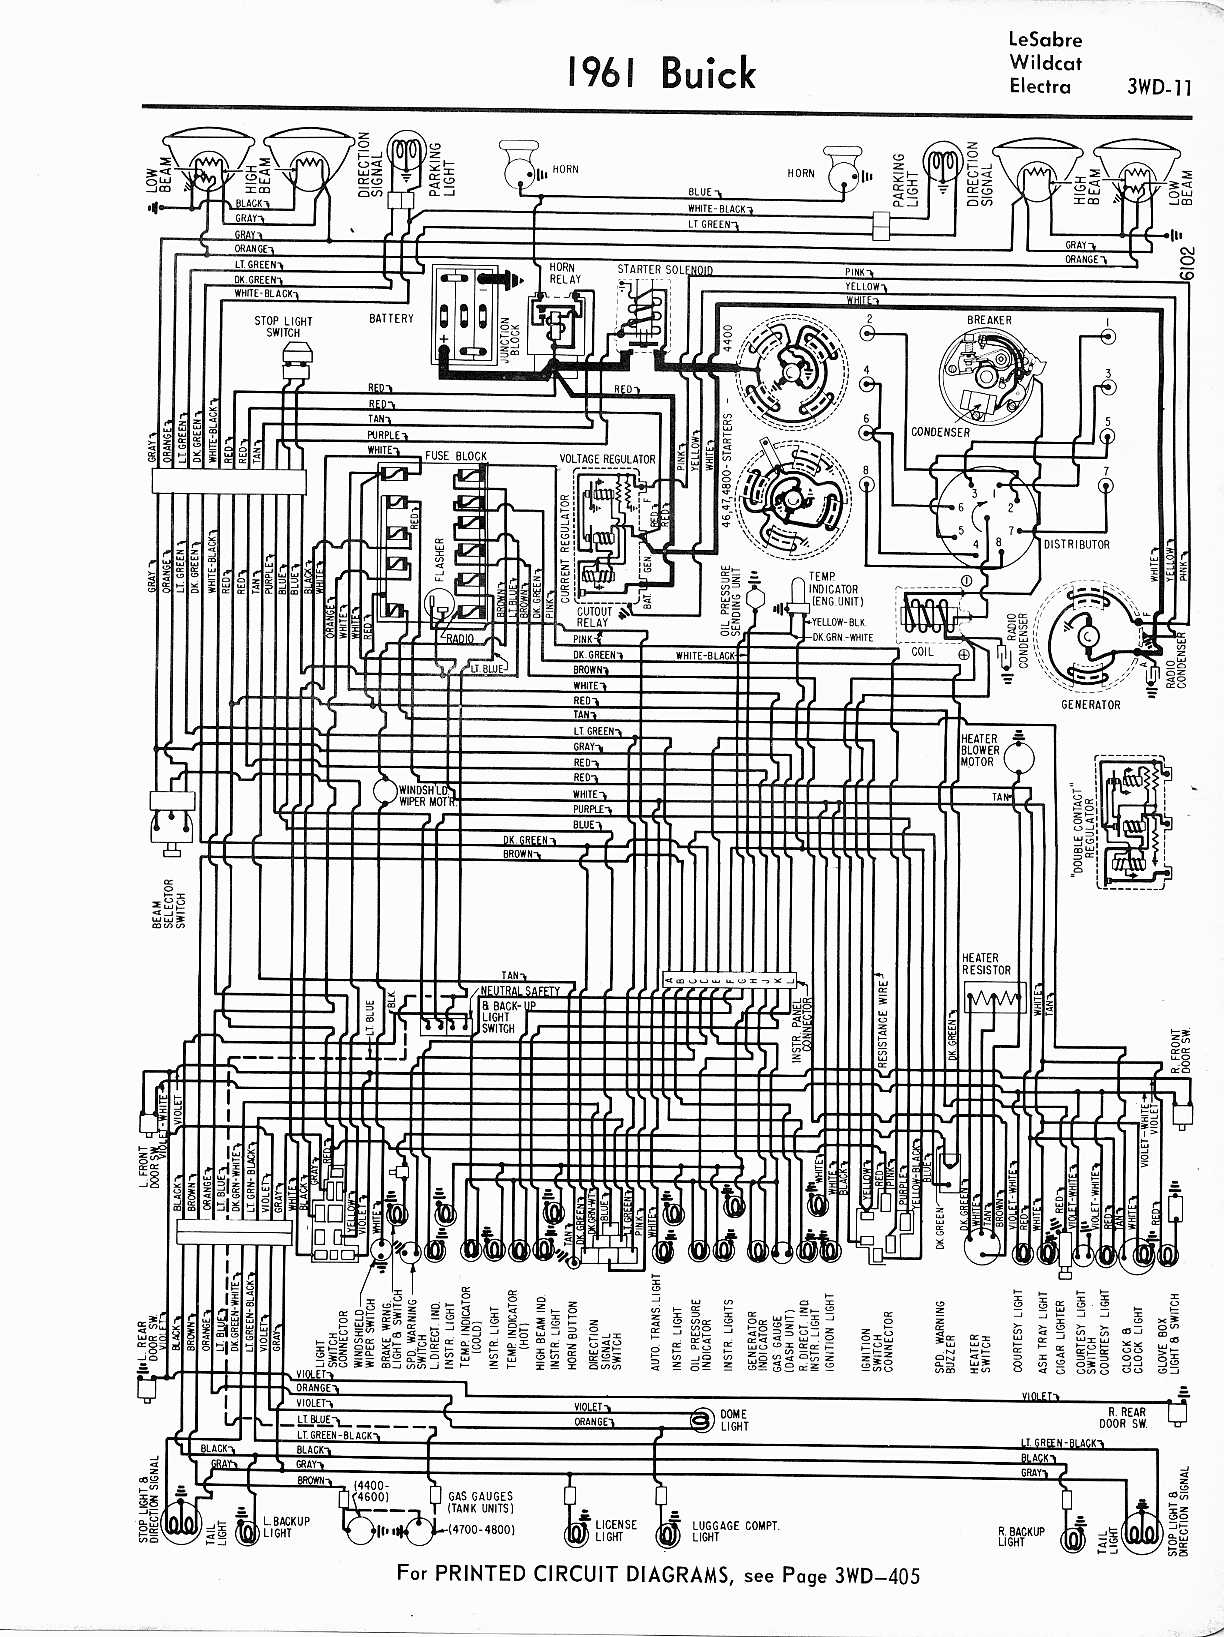 MWireBuic65_3WD 011 buick wiring diagrams 1957 1965 ta2000 thermostat wiring diagram at nearapp.co